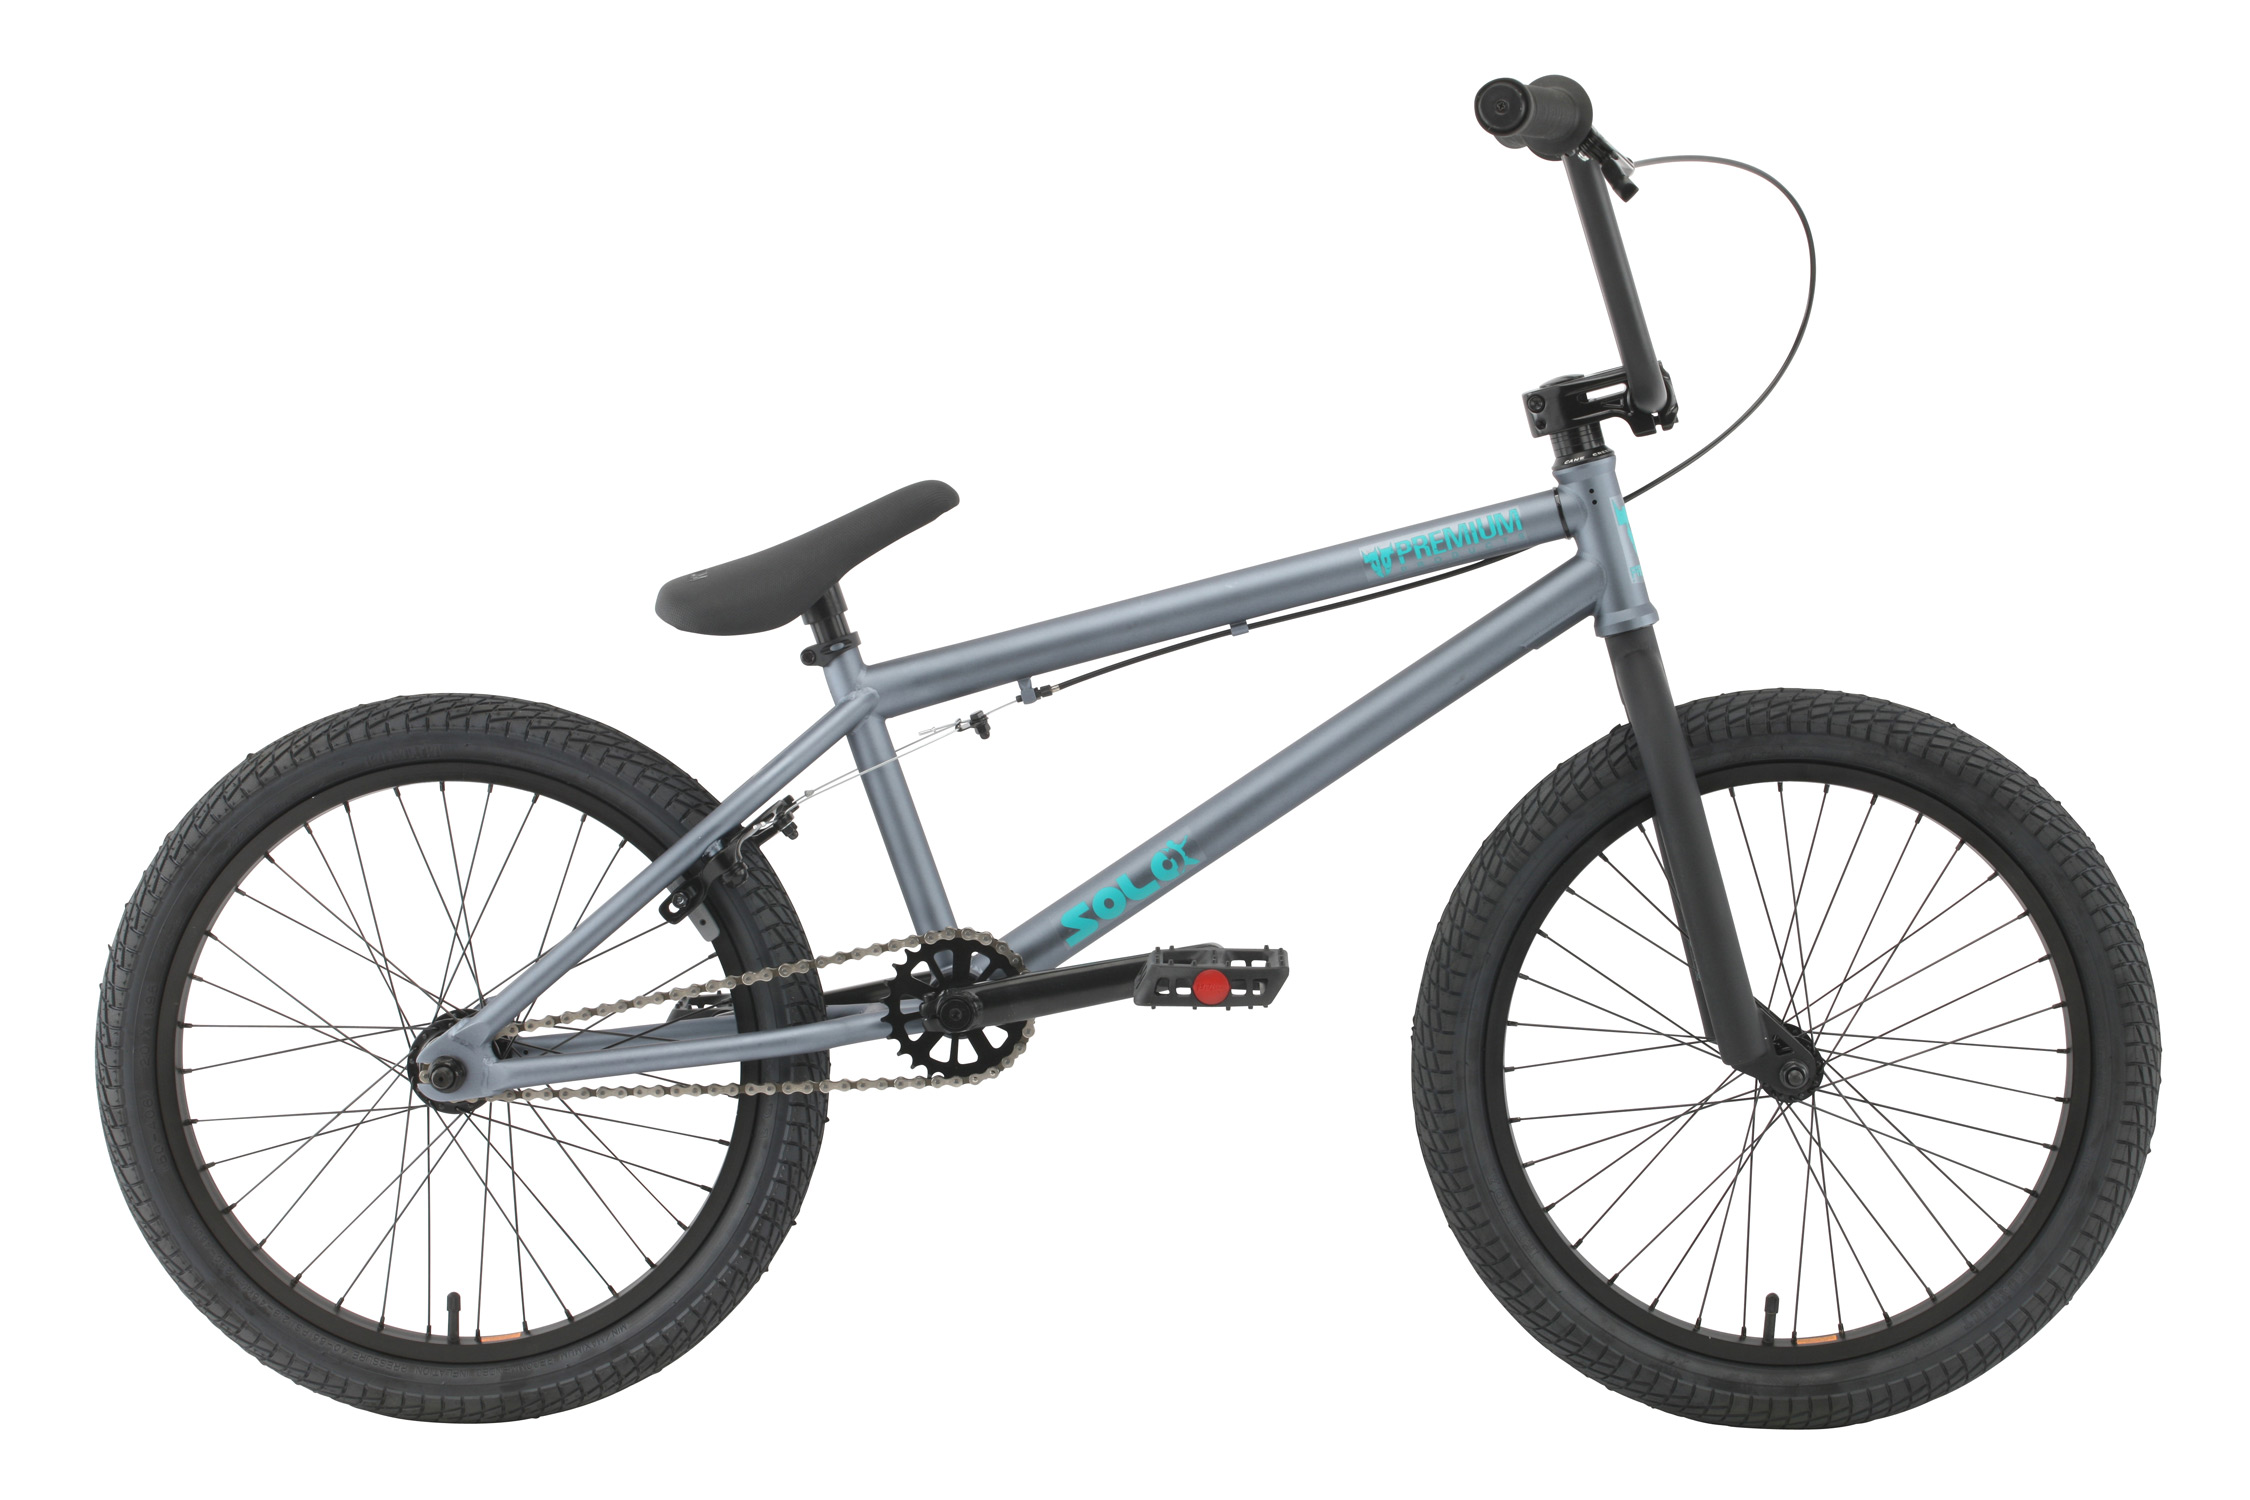 "BMX Key Features of the Premium Solo BMX Bike: Premium frame with chromoly down tube, Mid BB shell, internal head tube Odyssey Twisted plastic pedals 8"" rise bar (on 20"" & 20.5"") or 8.25"" (on 21"") with alloy front load stem Three-piece chromoly175mm 8-spline cranks with sealed Mid BB 25/9 gearing Premium Slim padded seat w/ built-in alloy post WEIGHT N/A FRAME Crmo down tube w/ Mid BB and Internal HT - 20"", 20.5"" or 21"" TT FORK 1 1/8"" Crmo steer tube - Threadless CRANKS 3 pc. tubular Crmo 175mm w/sealed MID BB PEDALS Odyssey plastic pedals TIRES Kenda Kontact 20x2.25 F / 20x1.95 R WHEELS 36h Alienation PBR alloy rims, 36h steel shell 3/8"" Frt / Alloy shell loose ball cassette 14mm Rear hubs ROTOR N/A Straight Cable GRIPS Premium Counterfeit BARS Hi-ten - 8"" Rise w/20"" & 20.5"" frame, 8.25"" rise w/21"" frame SEAT Premium slim padded one piece seat with built in post PEGS N/A - $329.95"